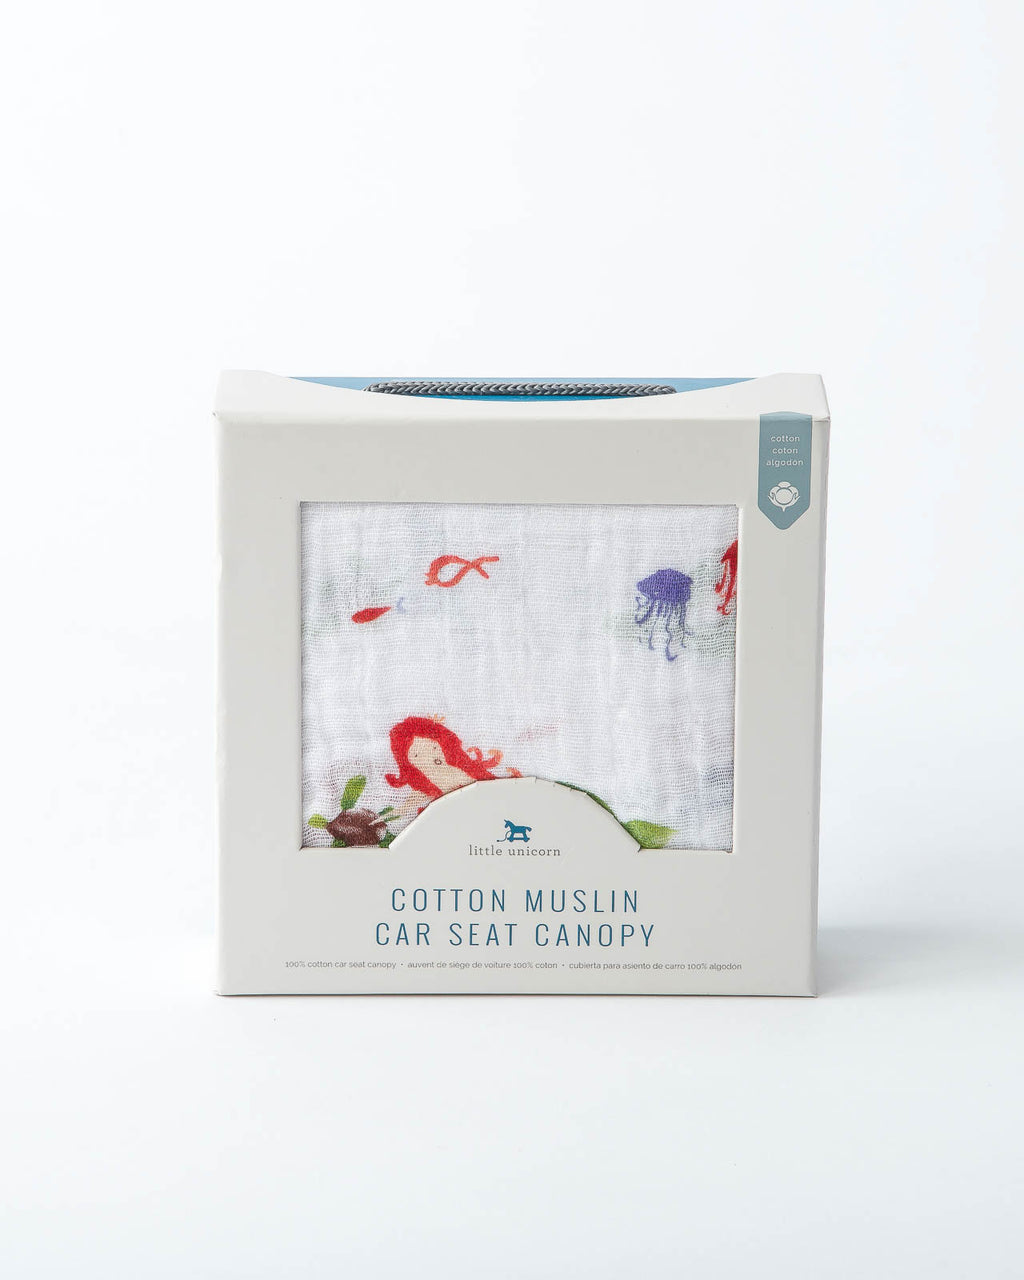 Cotton Muslin Car Seat Canopy - Mermaid